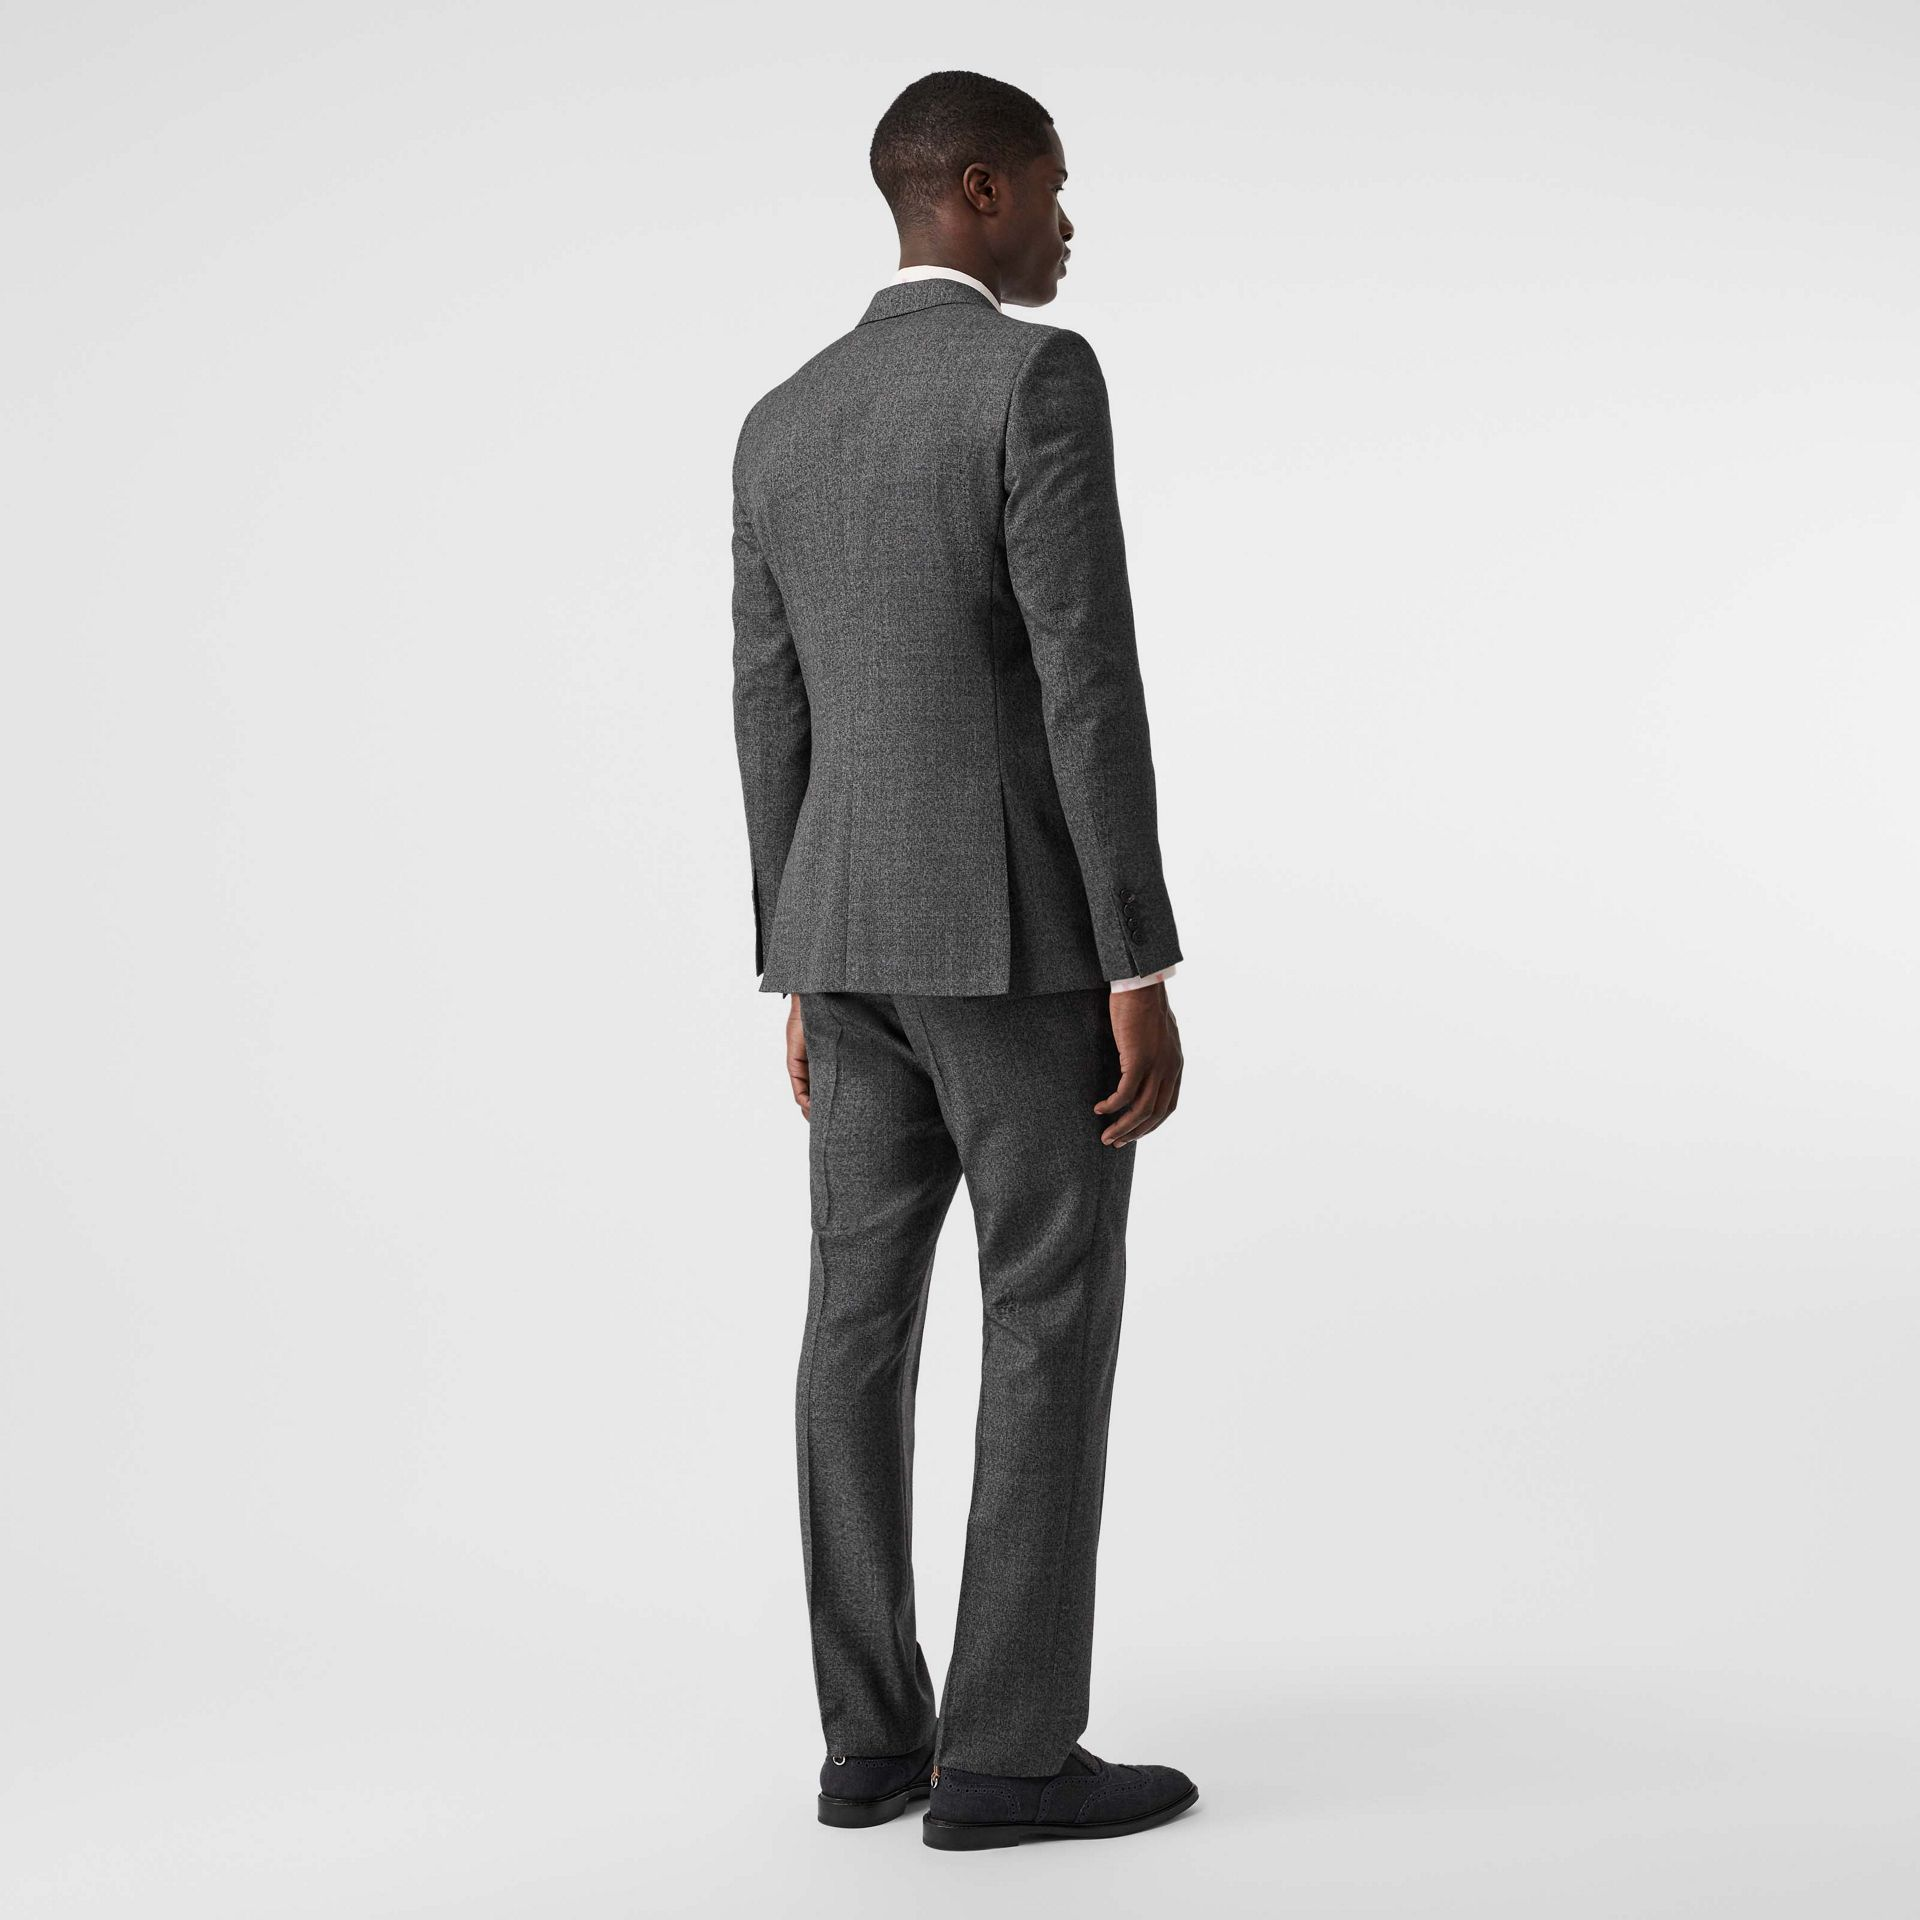 English Fit Sharkskin Wool Suit in Black Melange - Men | Burberry - gallery image 2